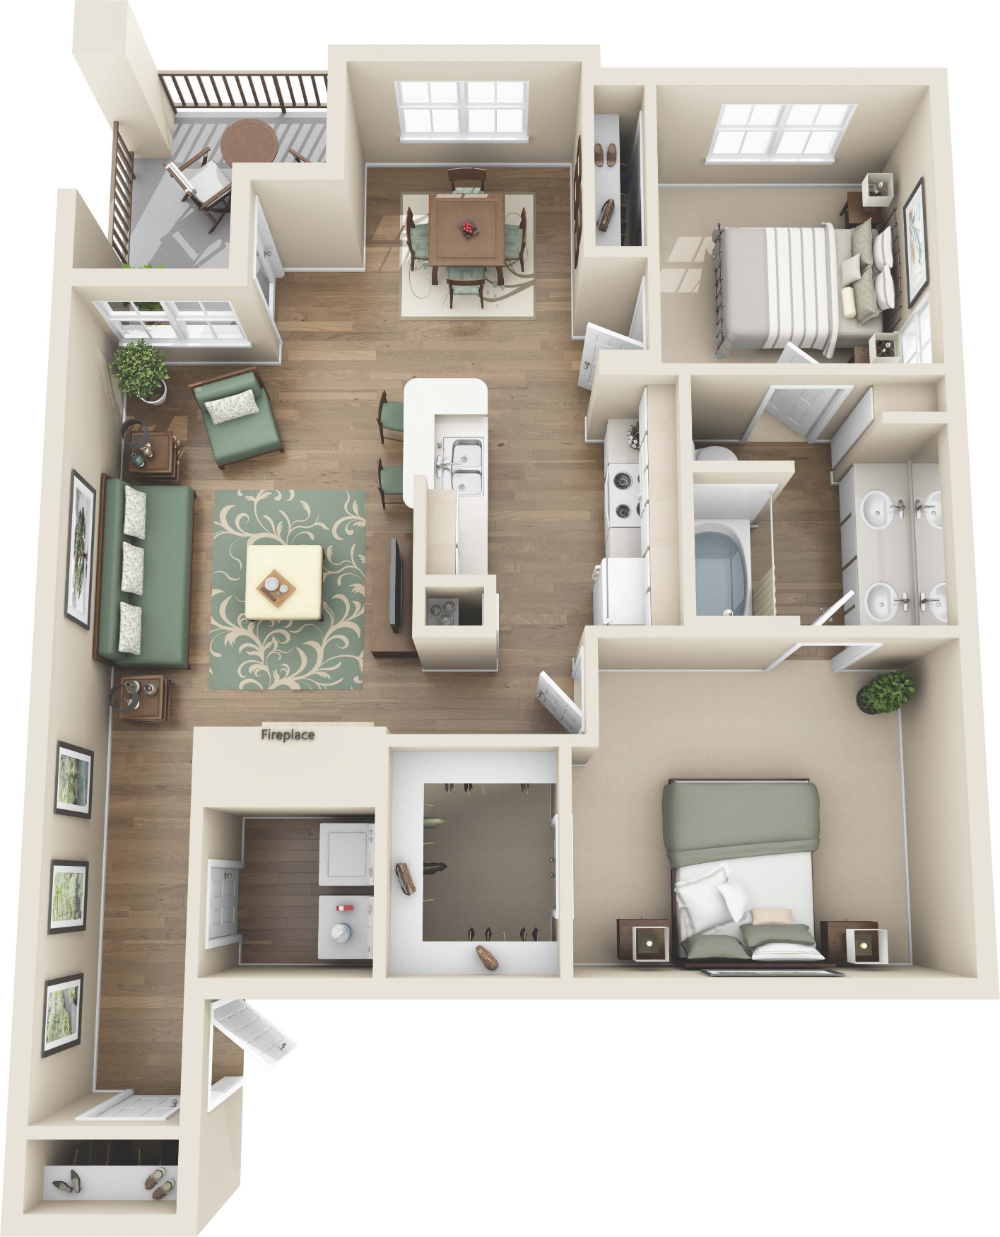 Luxury One Two Bedroom Apartments In Colorado Springs Co Apartment Steadfast Coloradosprings C Apartment Floor Plans Sims House Plans Apartment Design